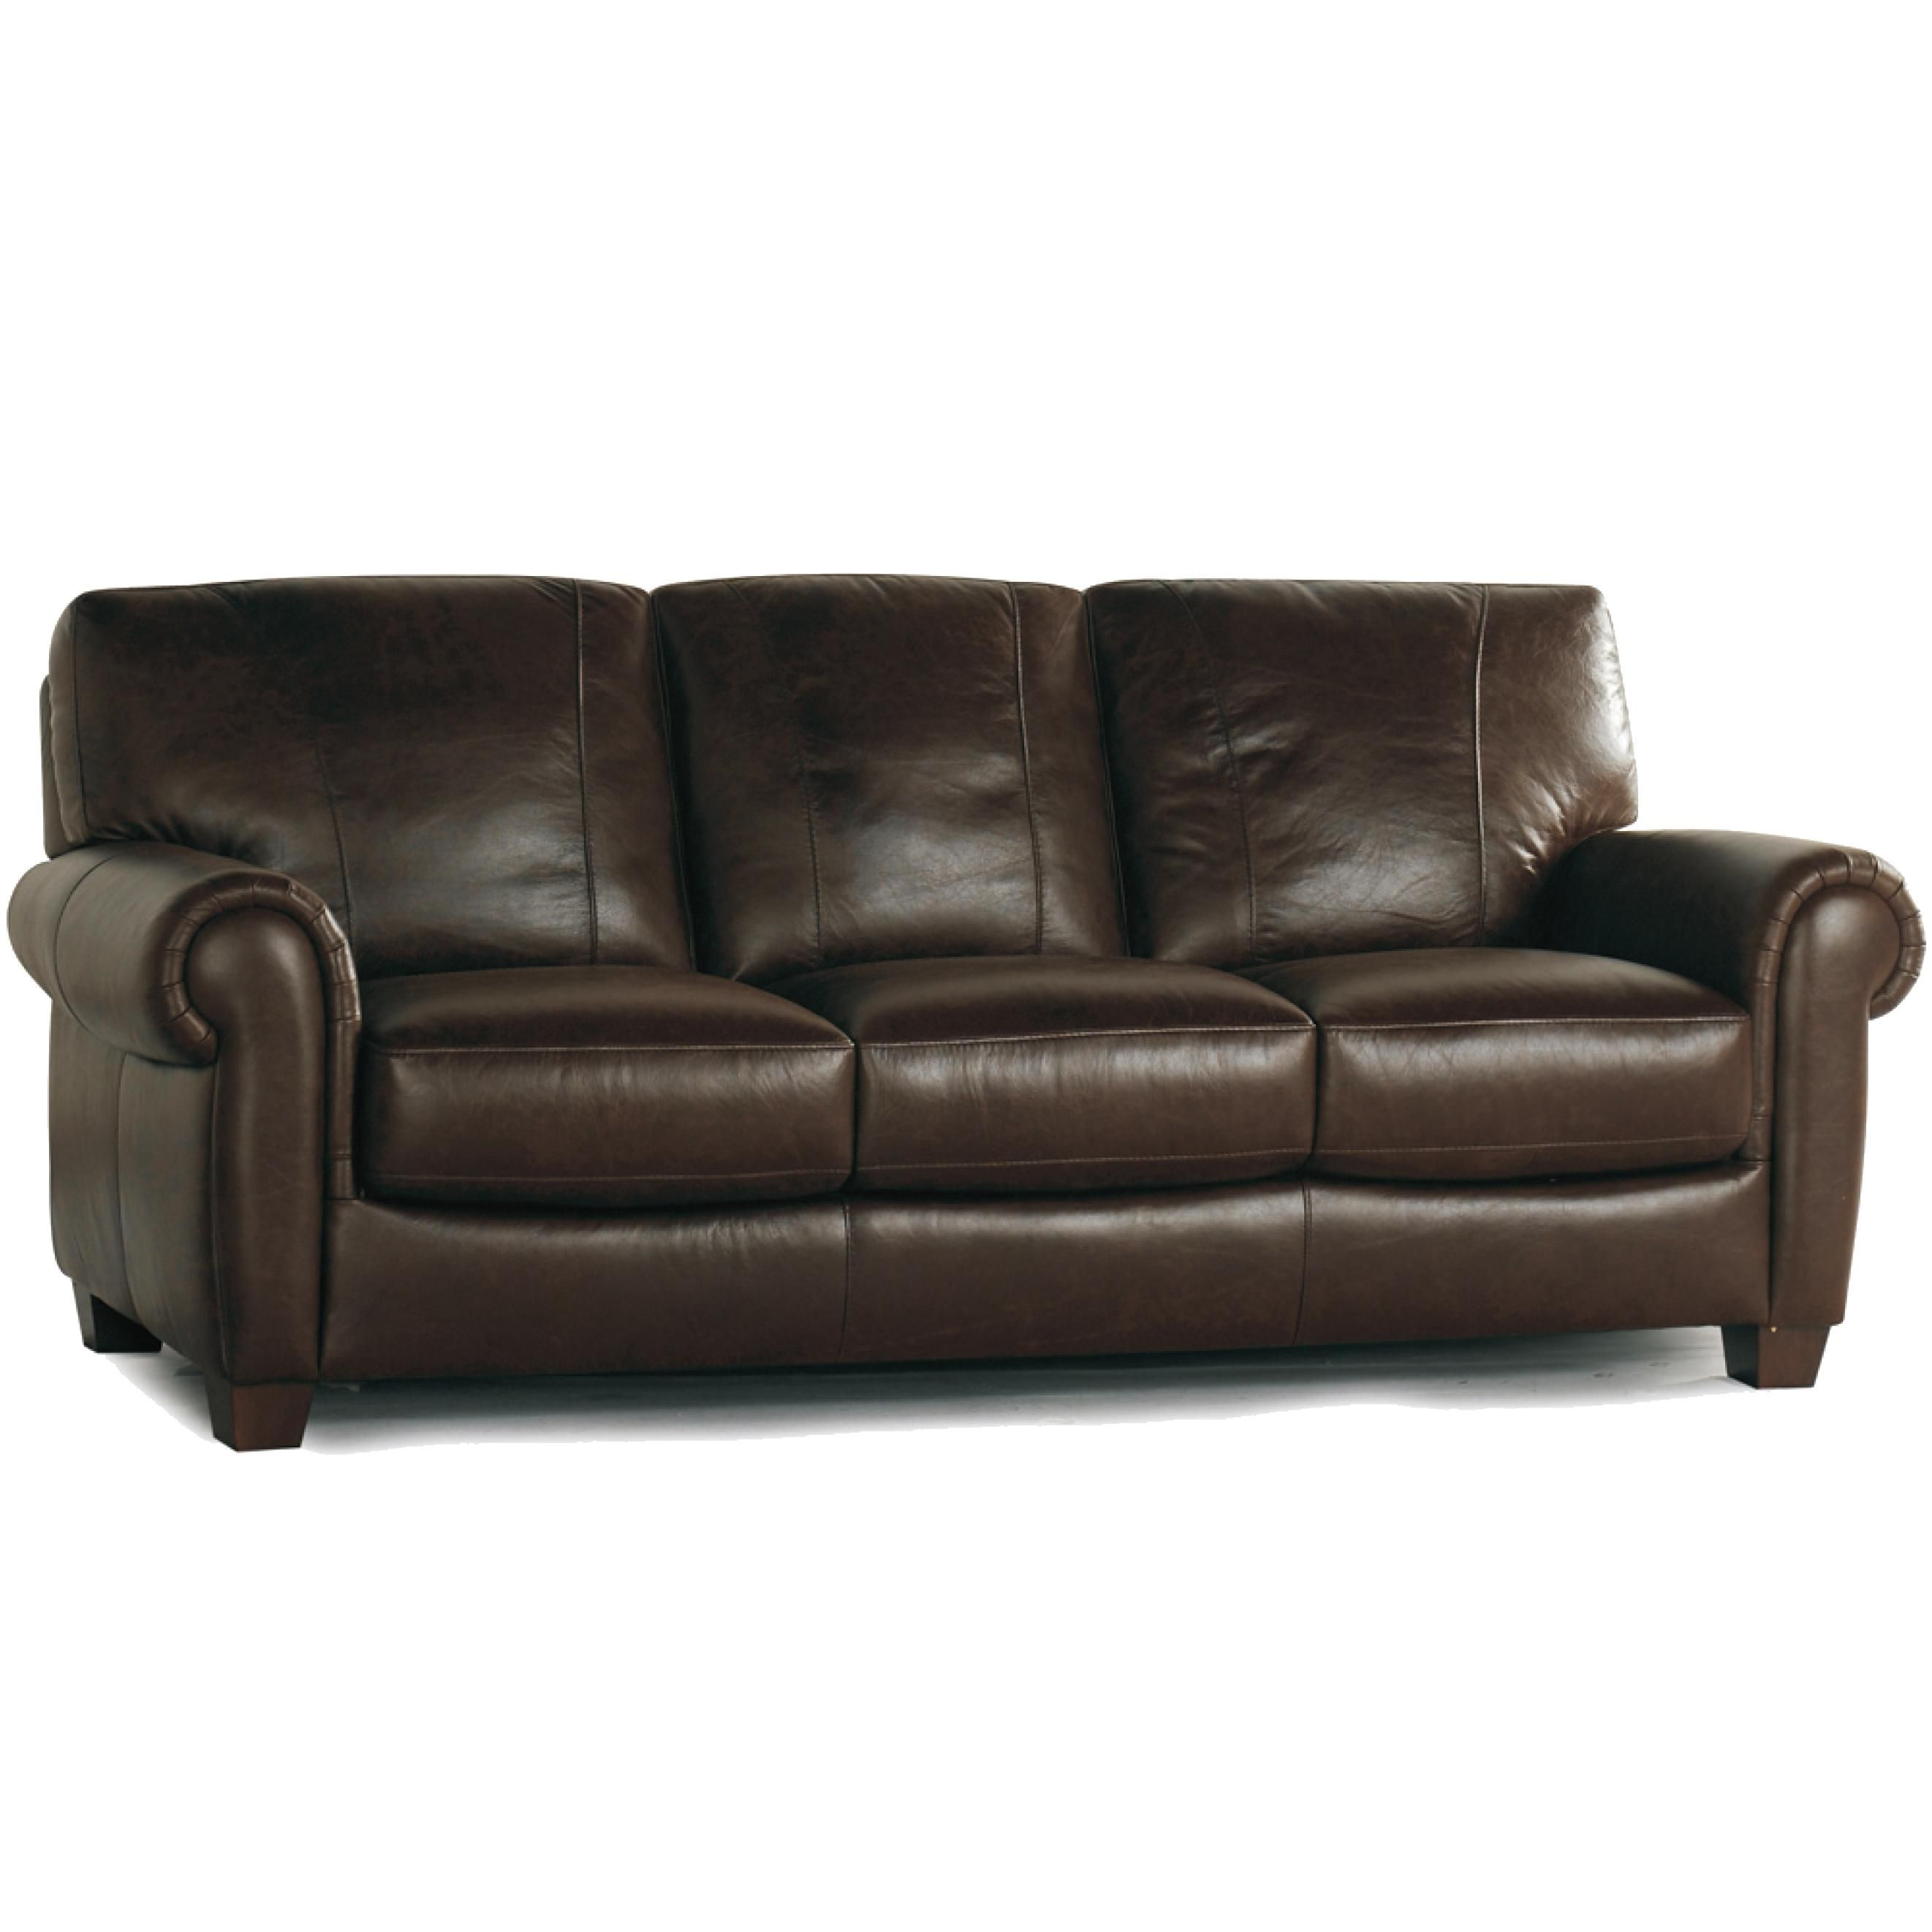 3516 Traditional Sofa By Violino At Bennett S Home Furnishings Traditional Sofa Sofa Mattress Furniture